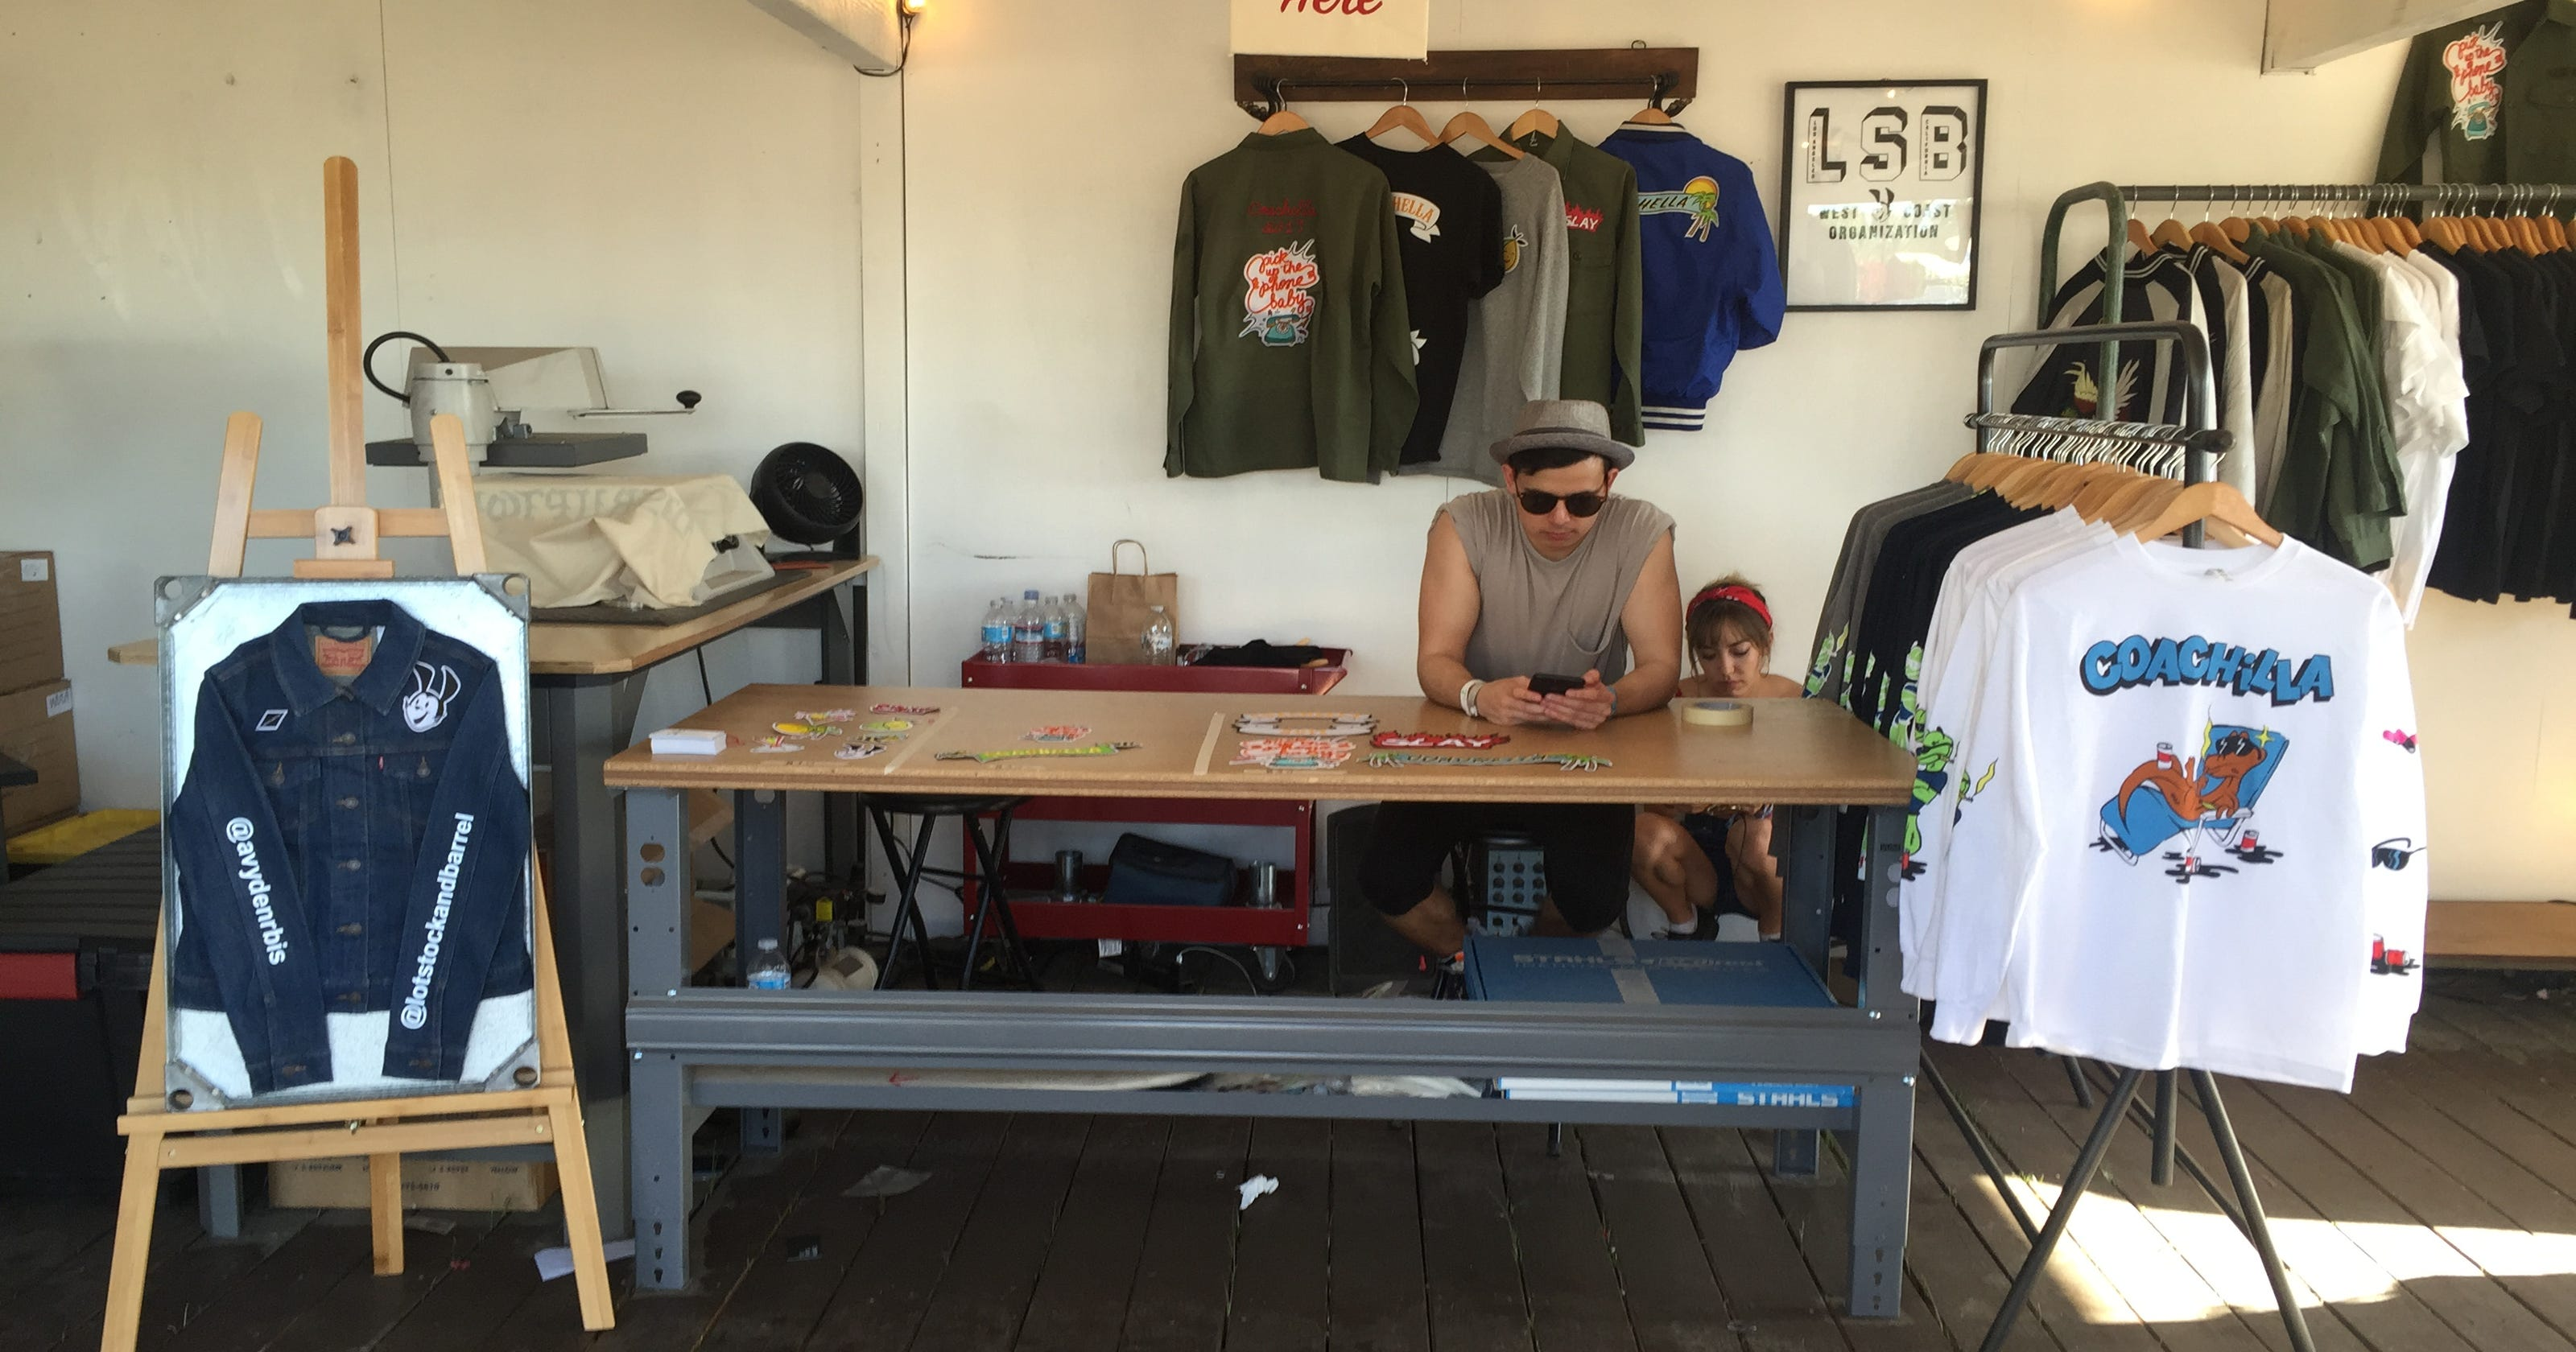 cb418cbde183c5 Festival-goers customize Coachella swag at pop-up shop